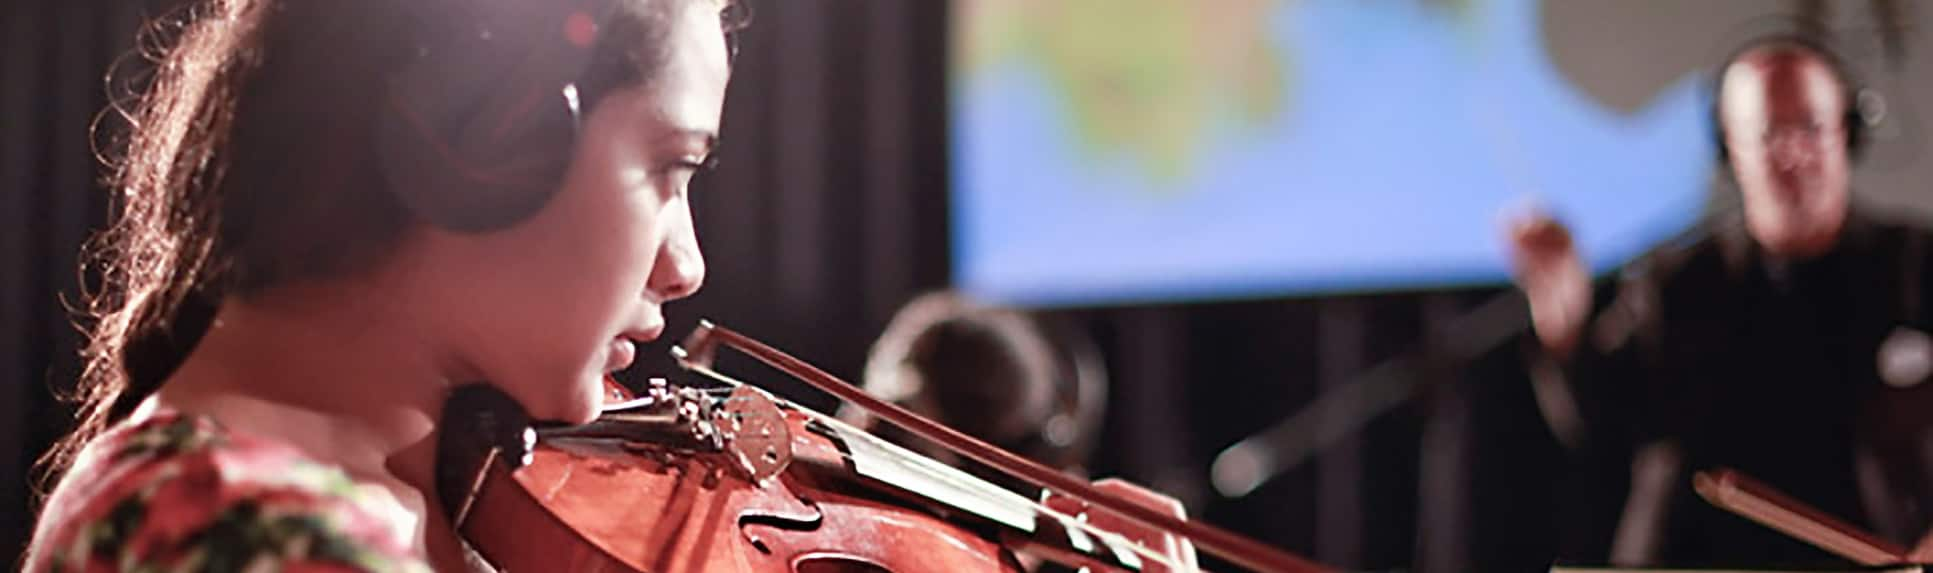 A young girl wearing headphones playing the violin